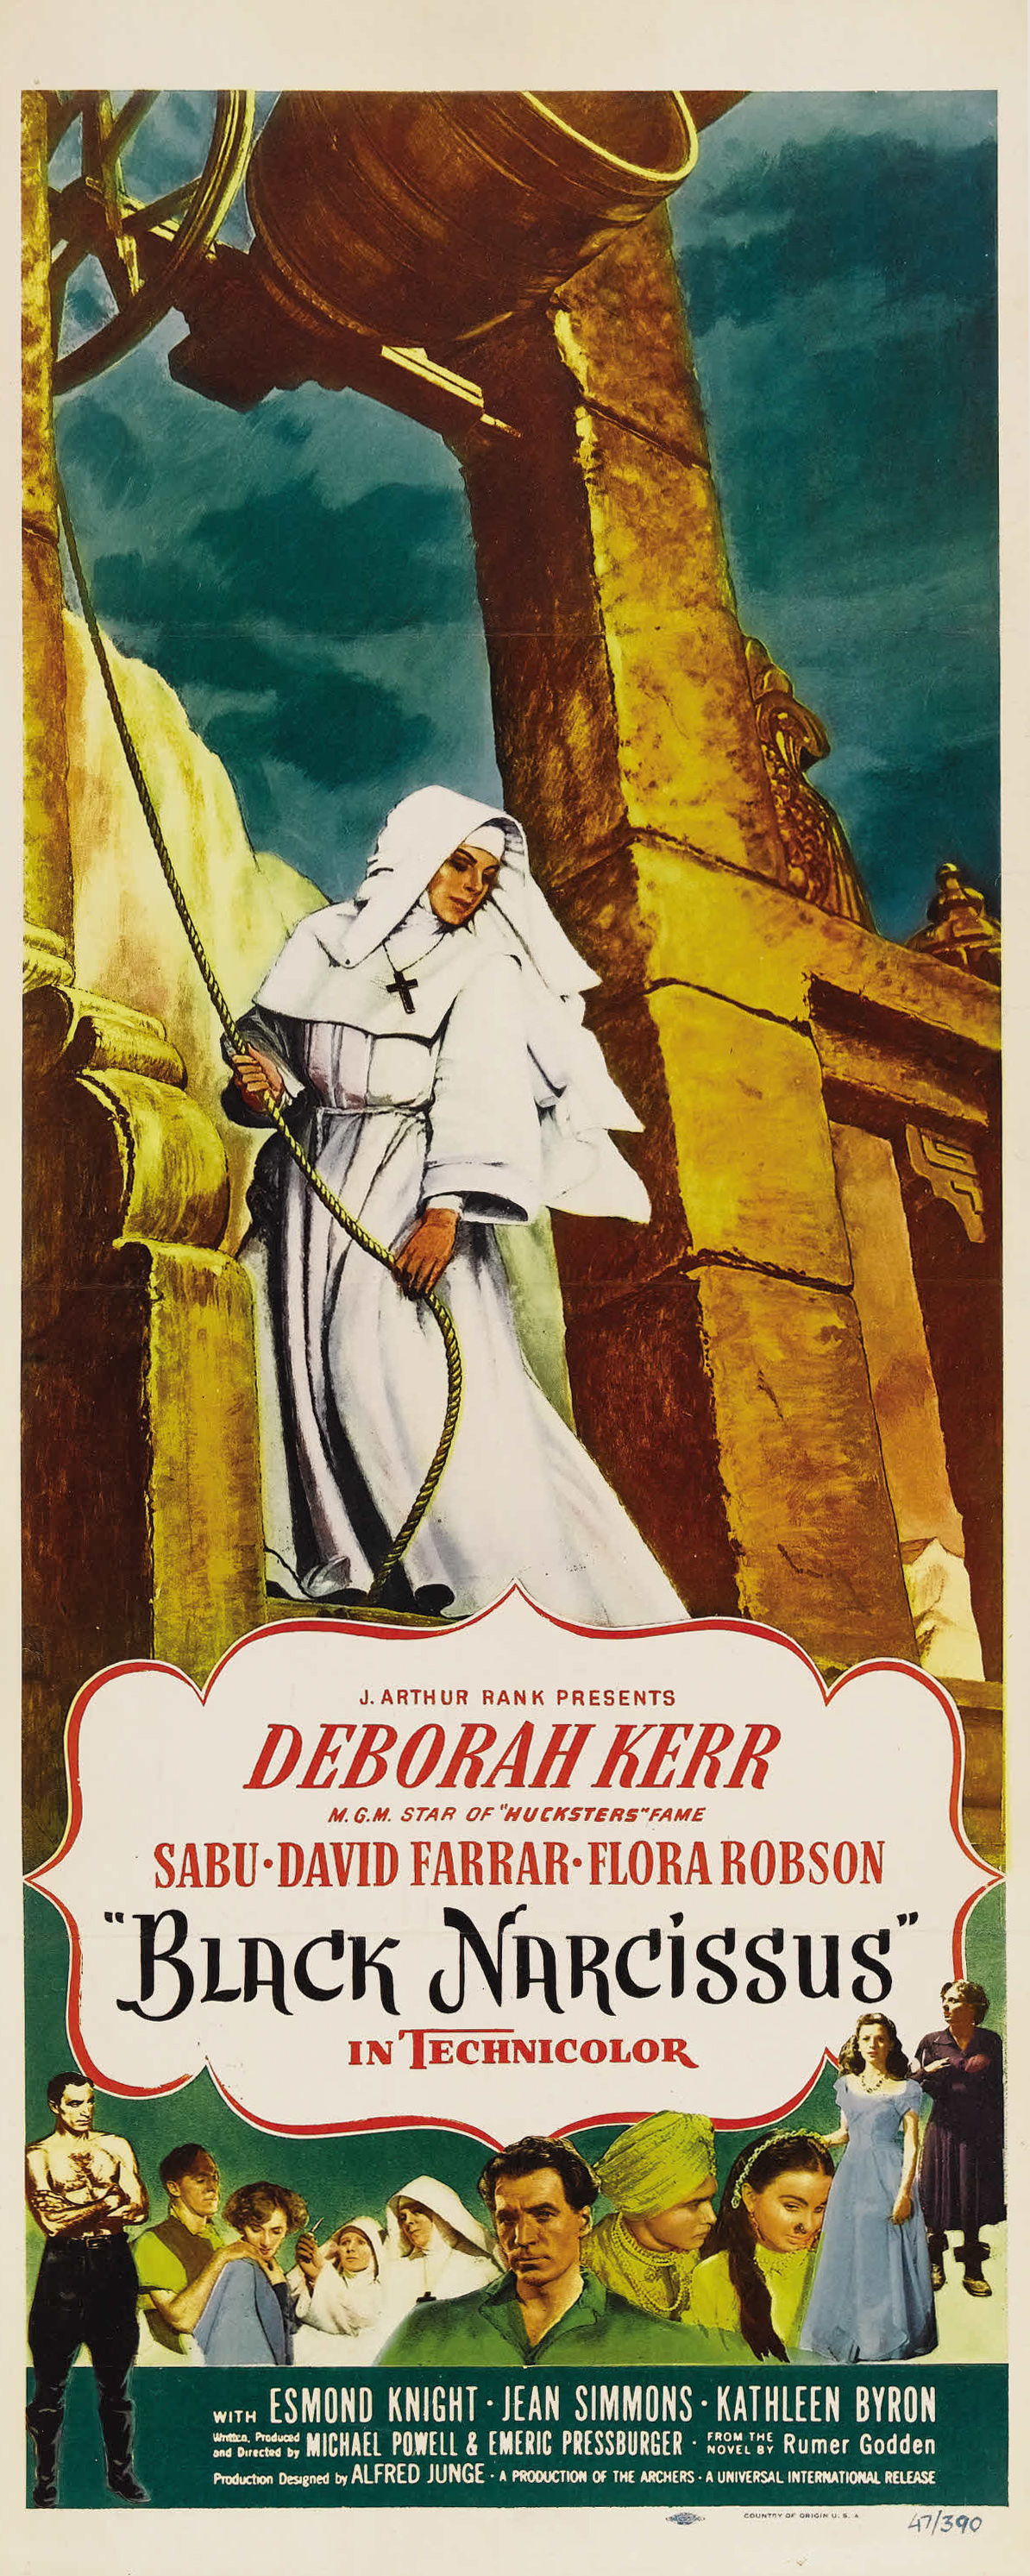 http://www.doctormacro.com/Images/Posters/B/Poster%20-%20Black%20Narcissus_01.jpg